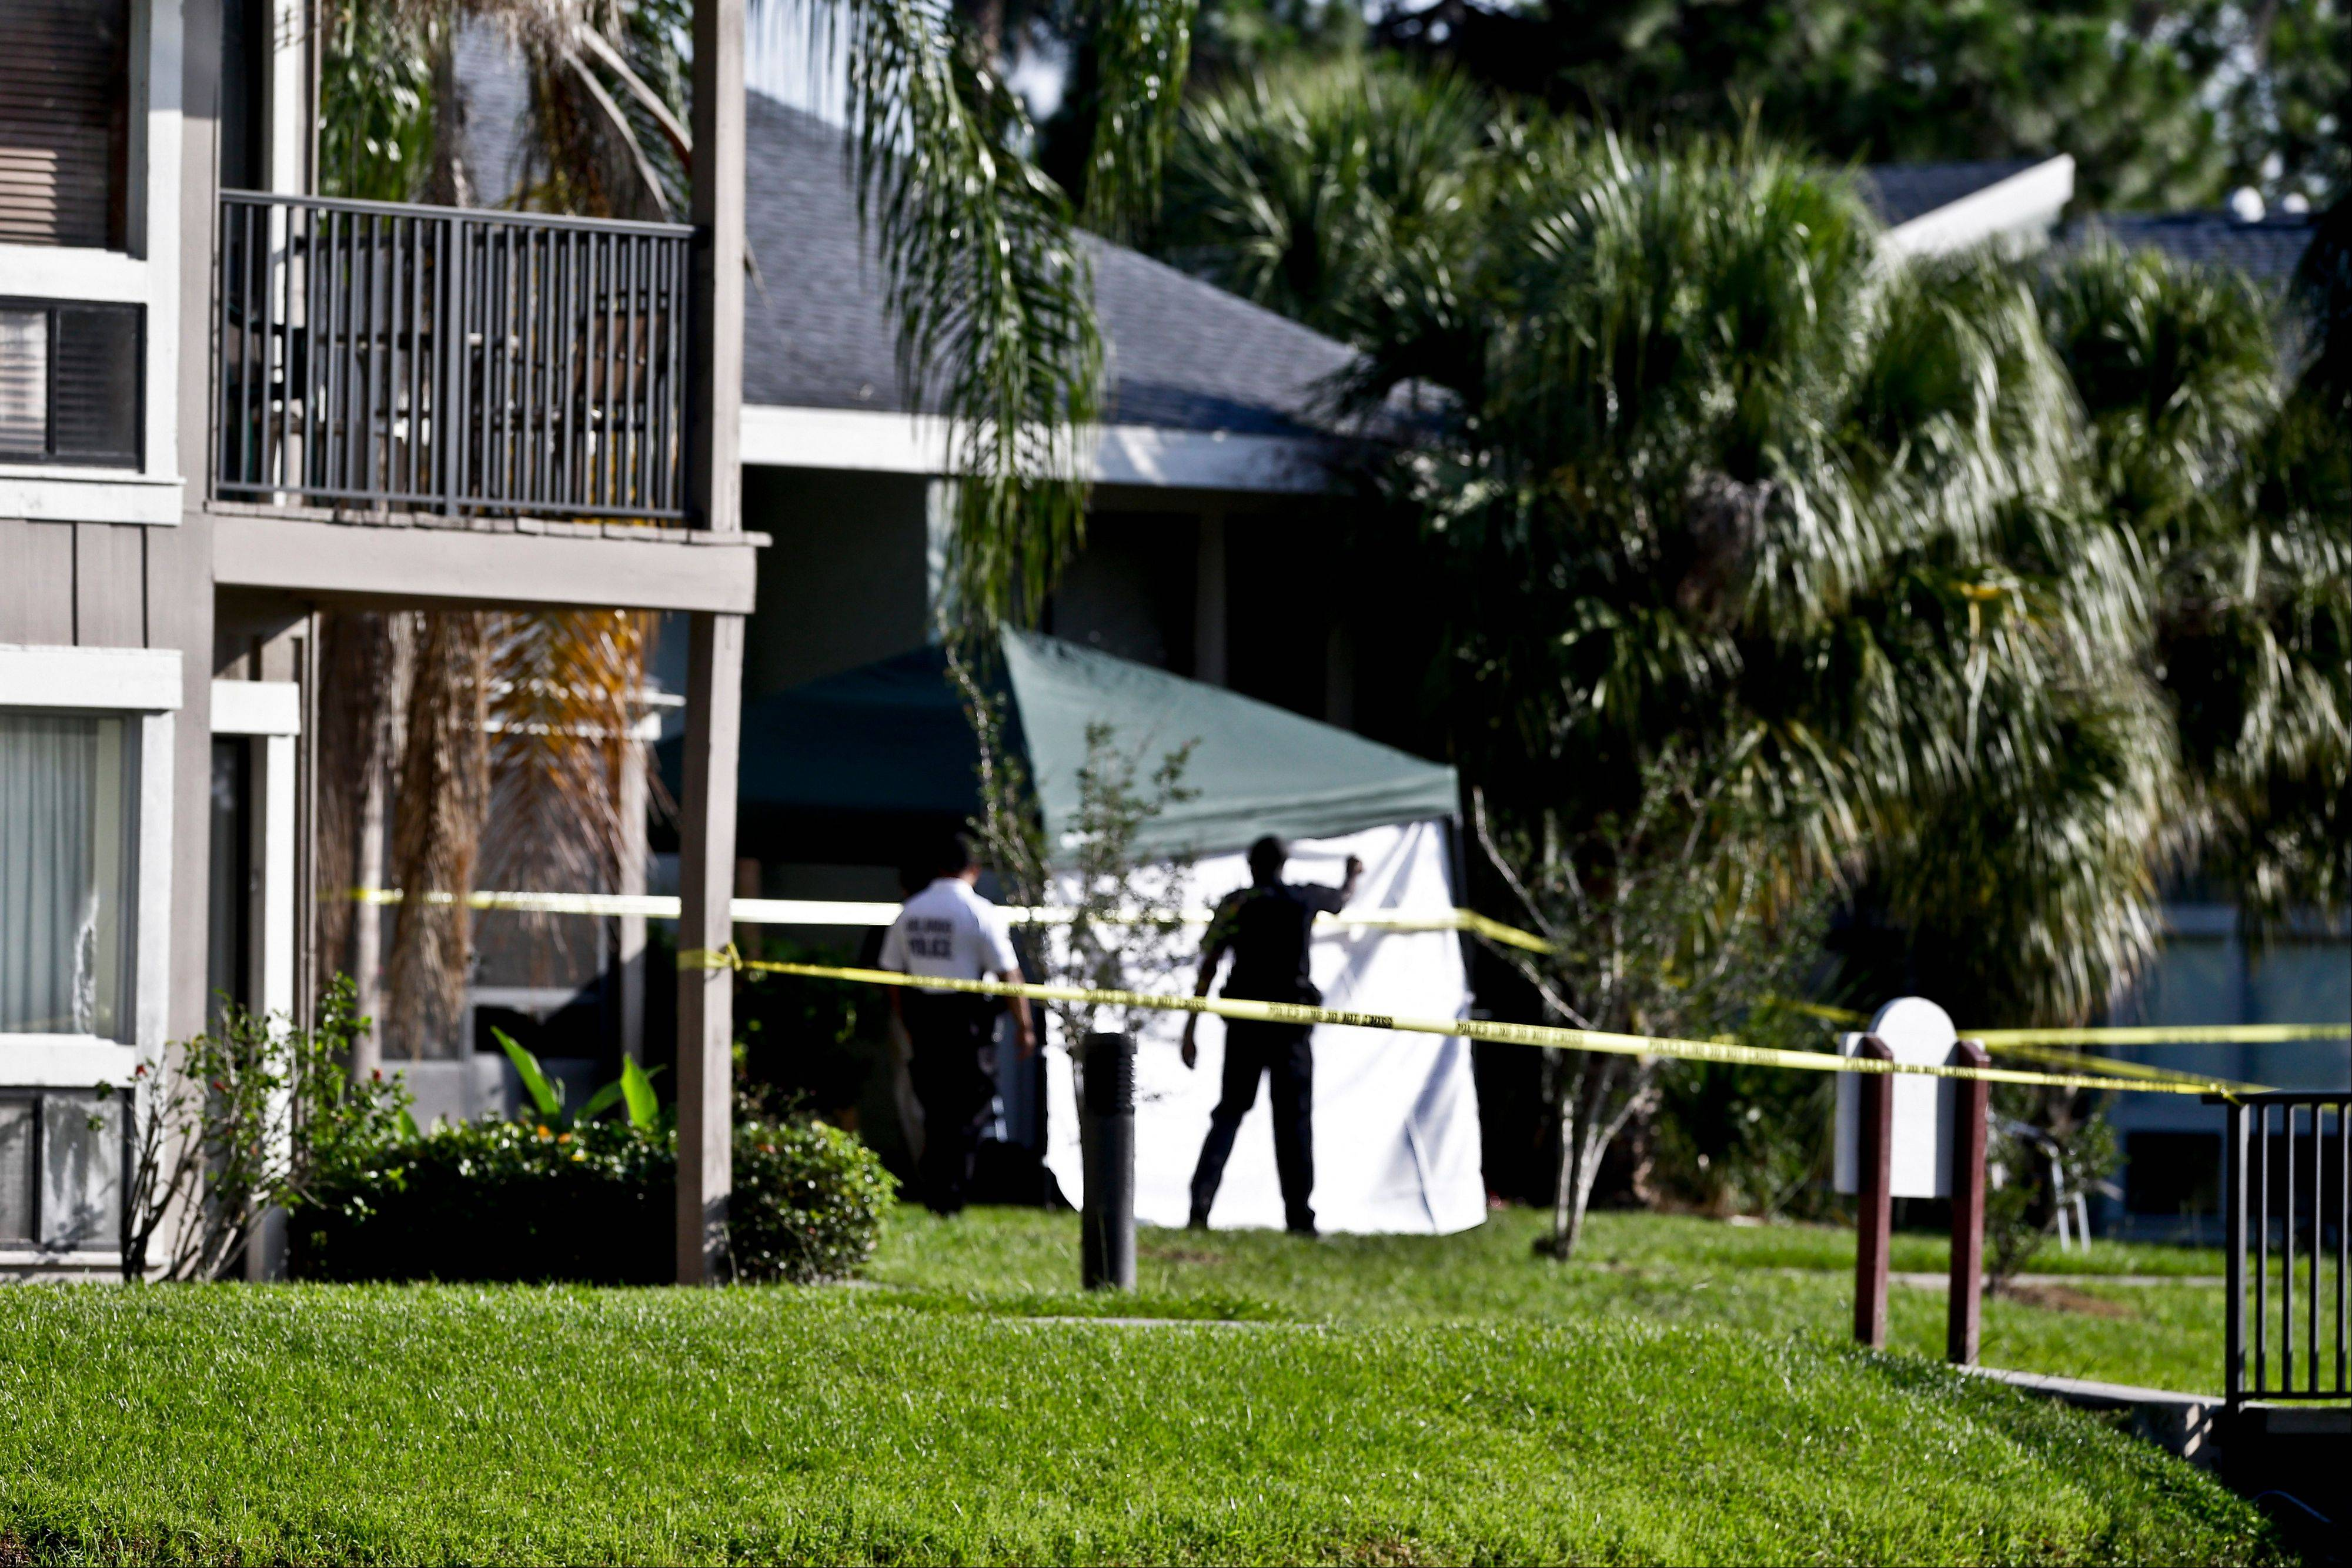 Investigators stand outside an apartment complex where a man was fatally shot when a team of FBI agents swarmed his home early Wednesday in Orlando, Fla. The FBI says the man, being questioned by authorities in the Boston bombing probe, was fatally shot when he initiated a violent confrontation, authorities said.